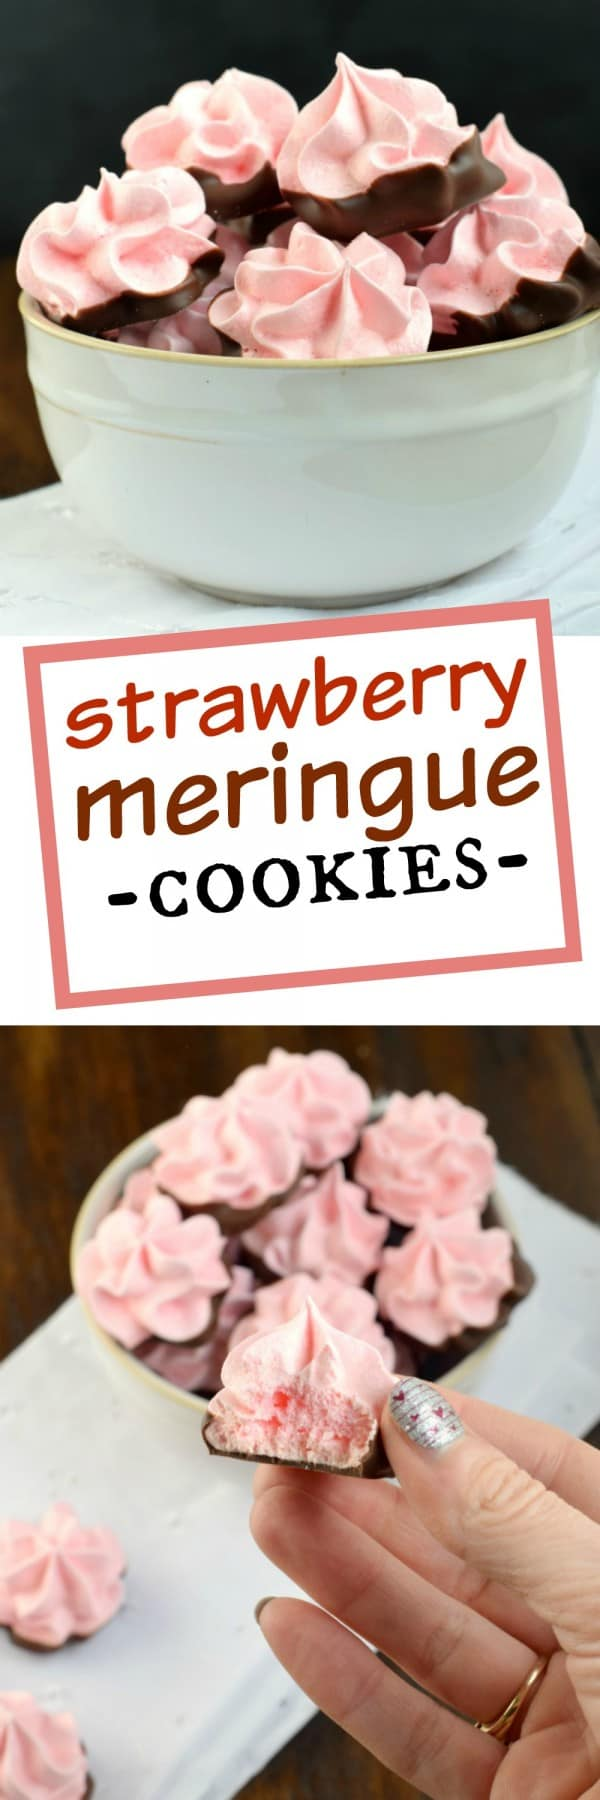 Delicious, festive, melt in your mouth Strawberry Meringues dipped in chocolate! My favorite cookie recipe!